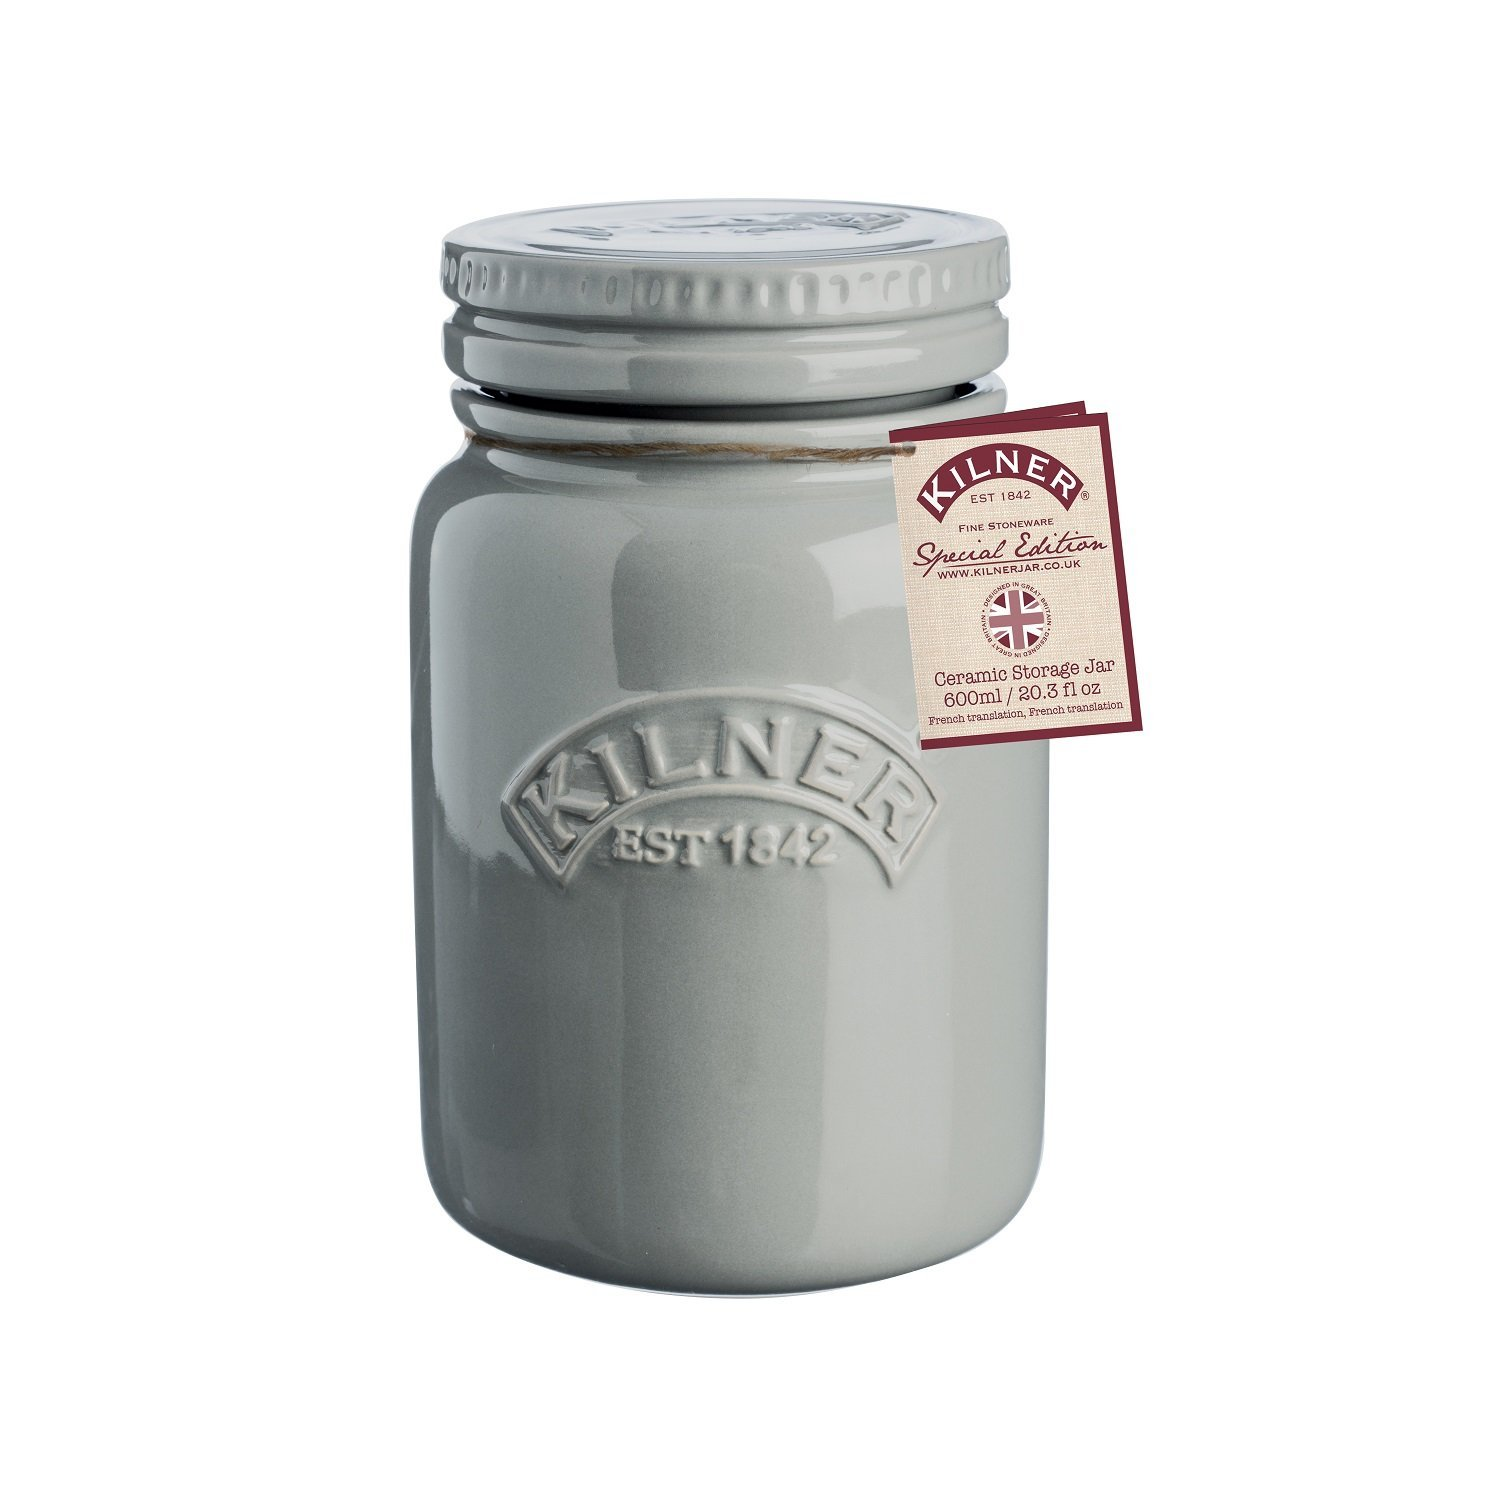 Kilner Ceramic Storage Jar Morning Mist